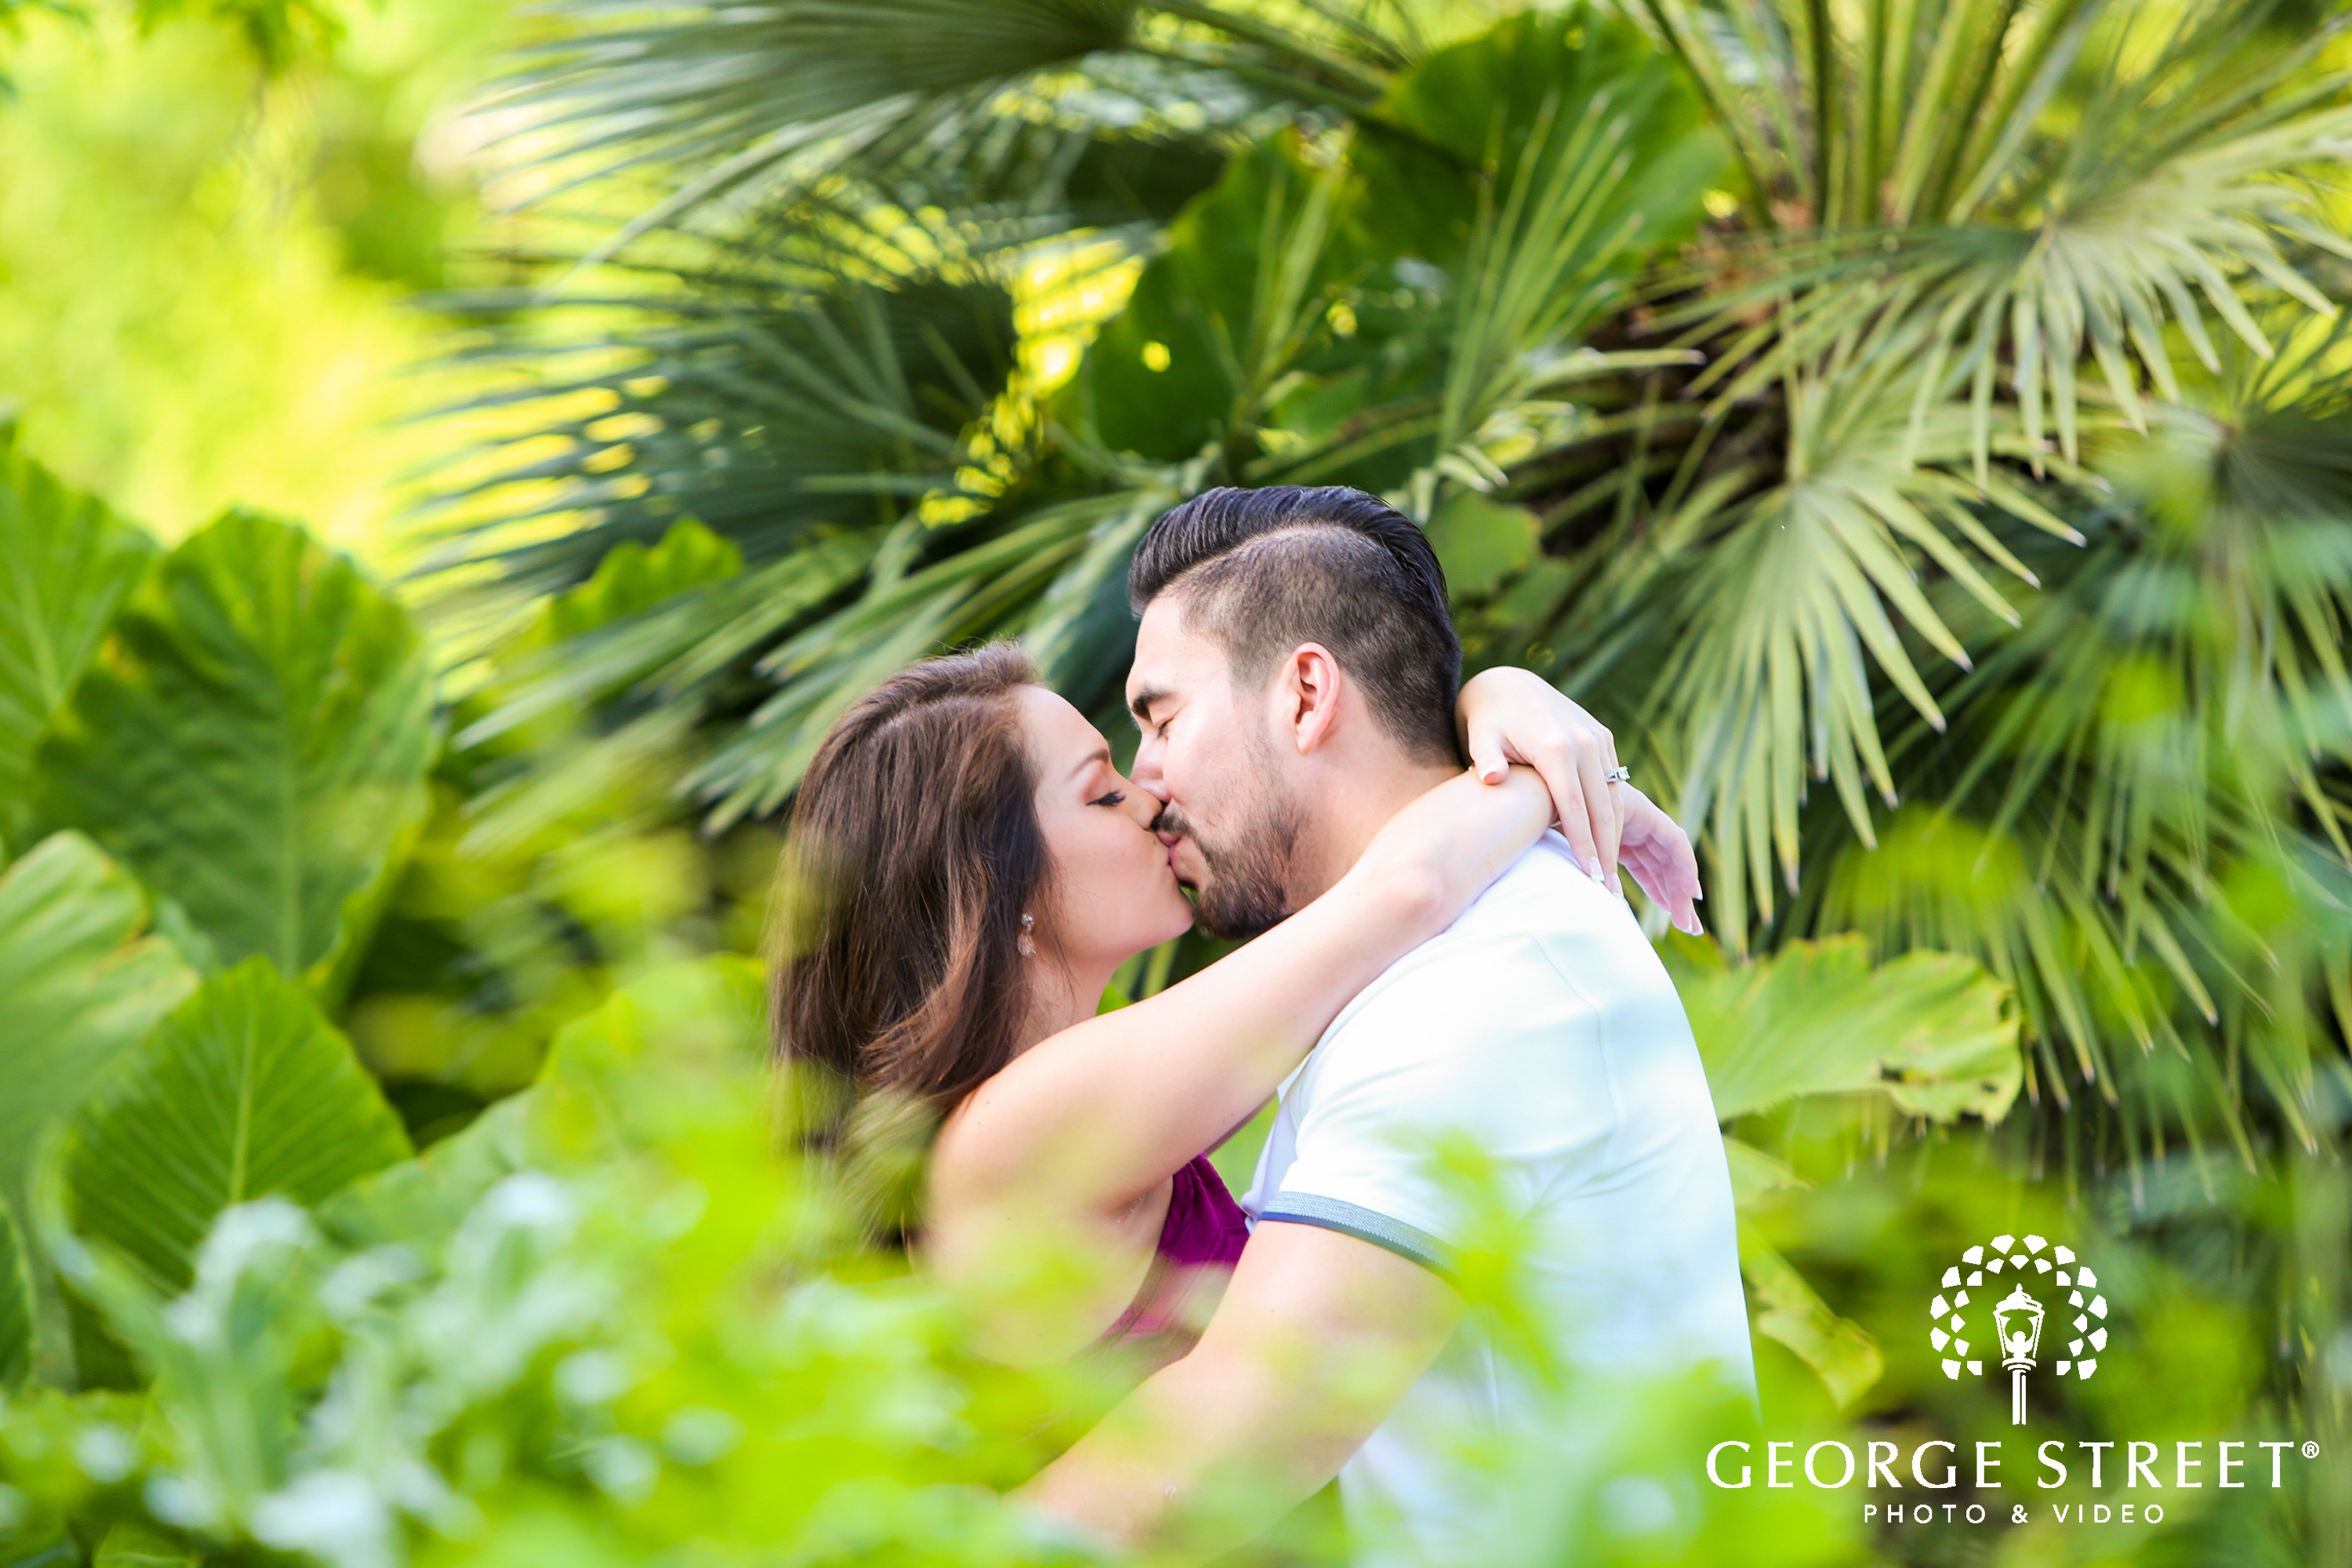 George Street's Top 4 Engagement Session Locations in San Antonio